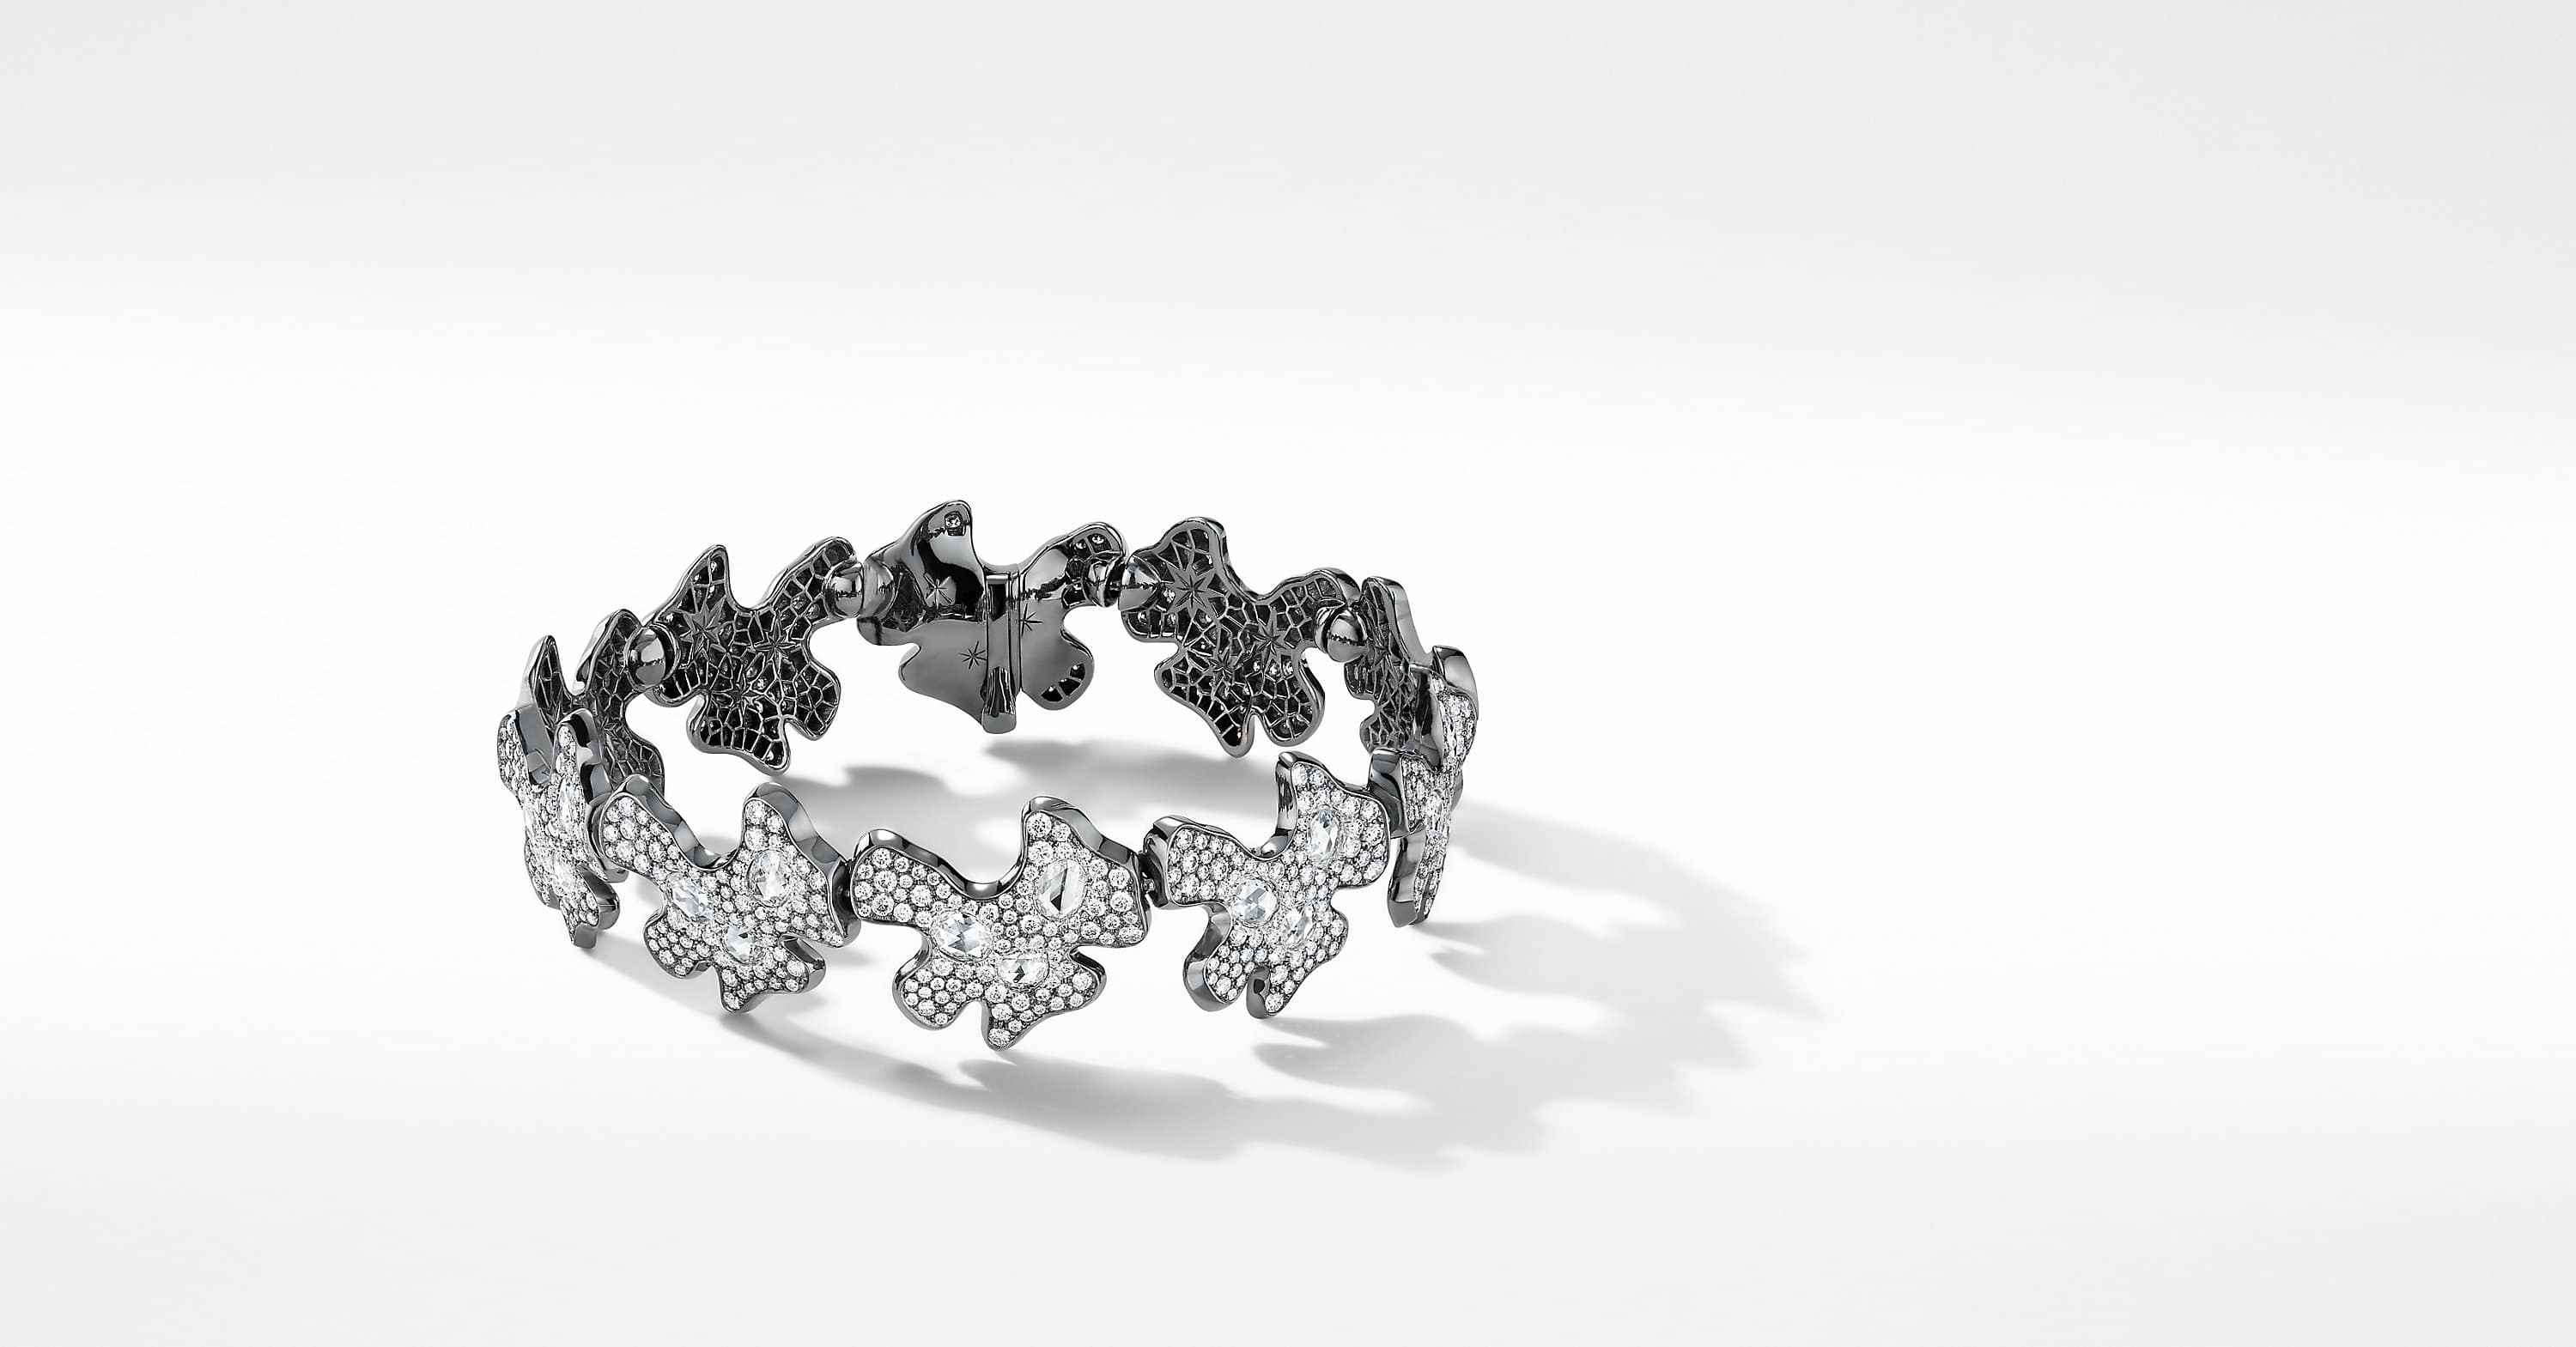 Night Petals Bracelet in White Gold with Diamonds